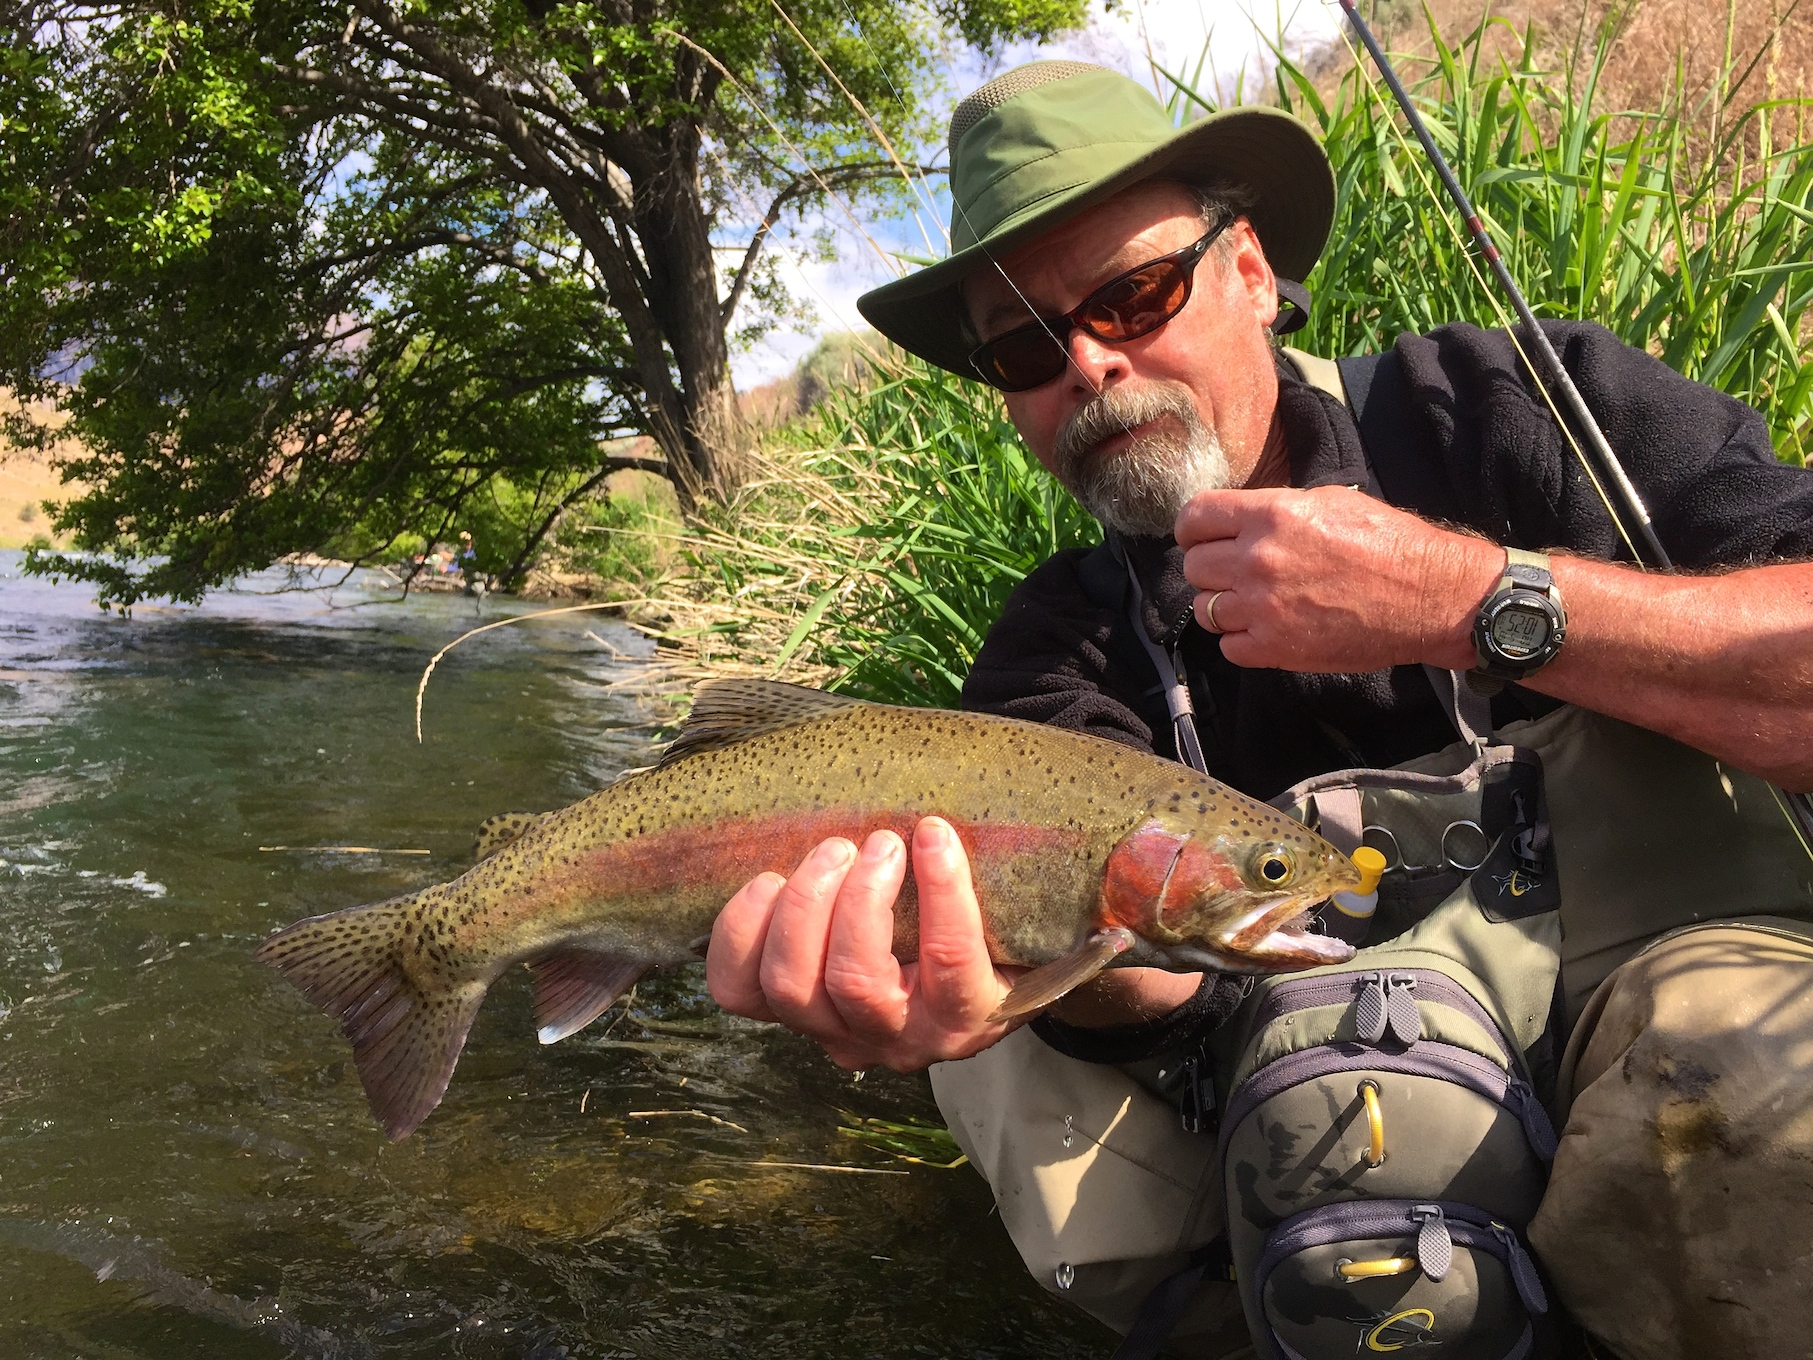 Deschutes river fly fishing guides ethan nickel outfitters for Fly fishing charters